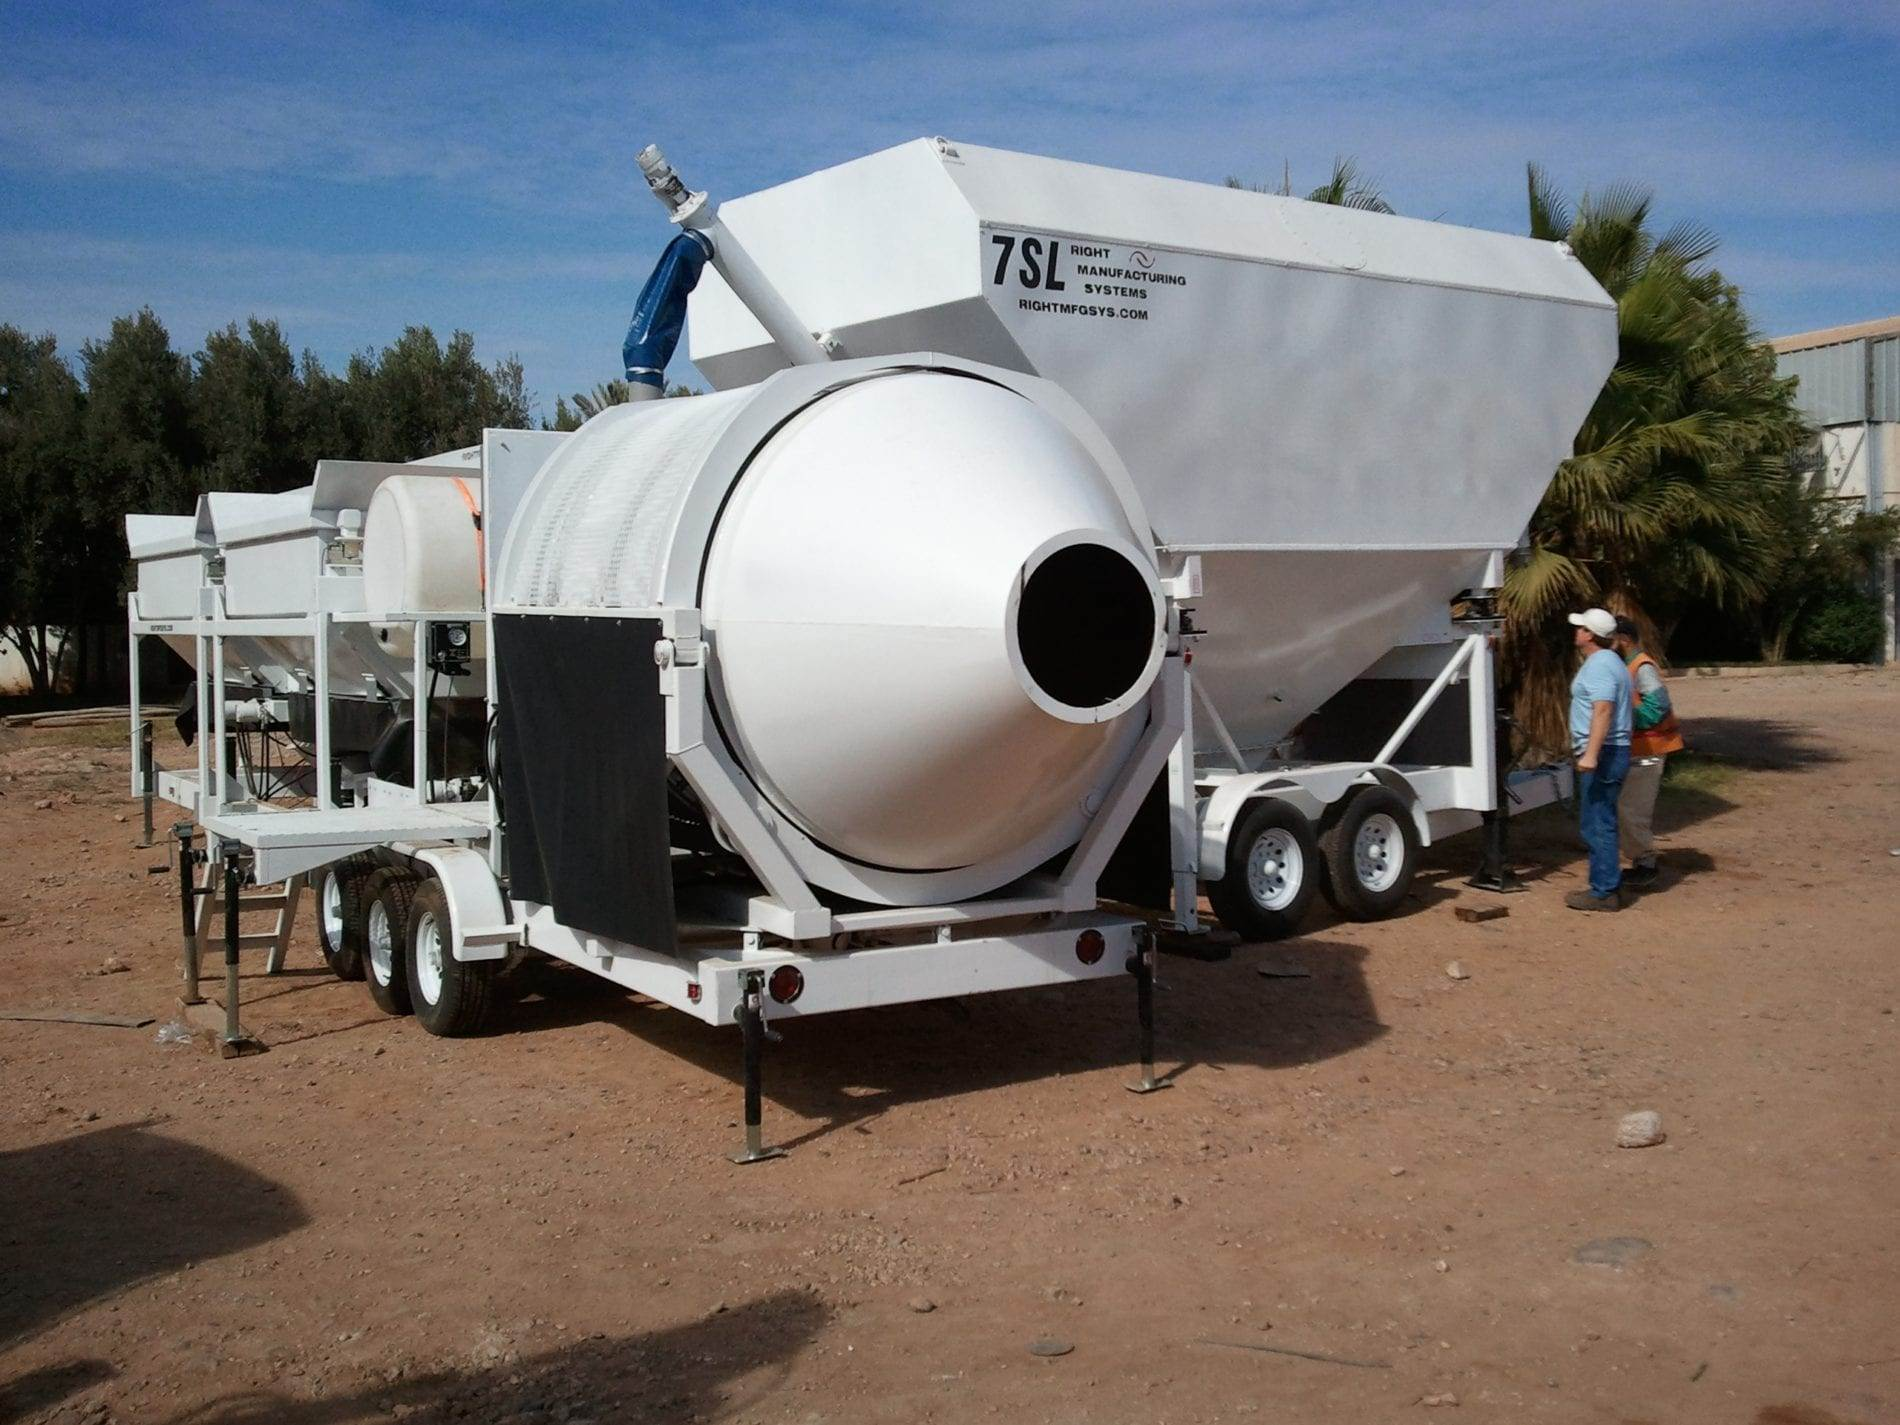 Portable Concrete Mixer Batch Plant EZ 2-8-4 & Portable Cement Silo 7SL-80 in Morrocco